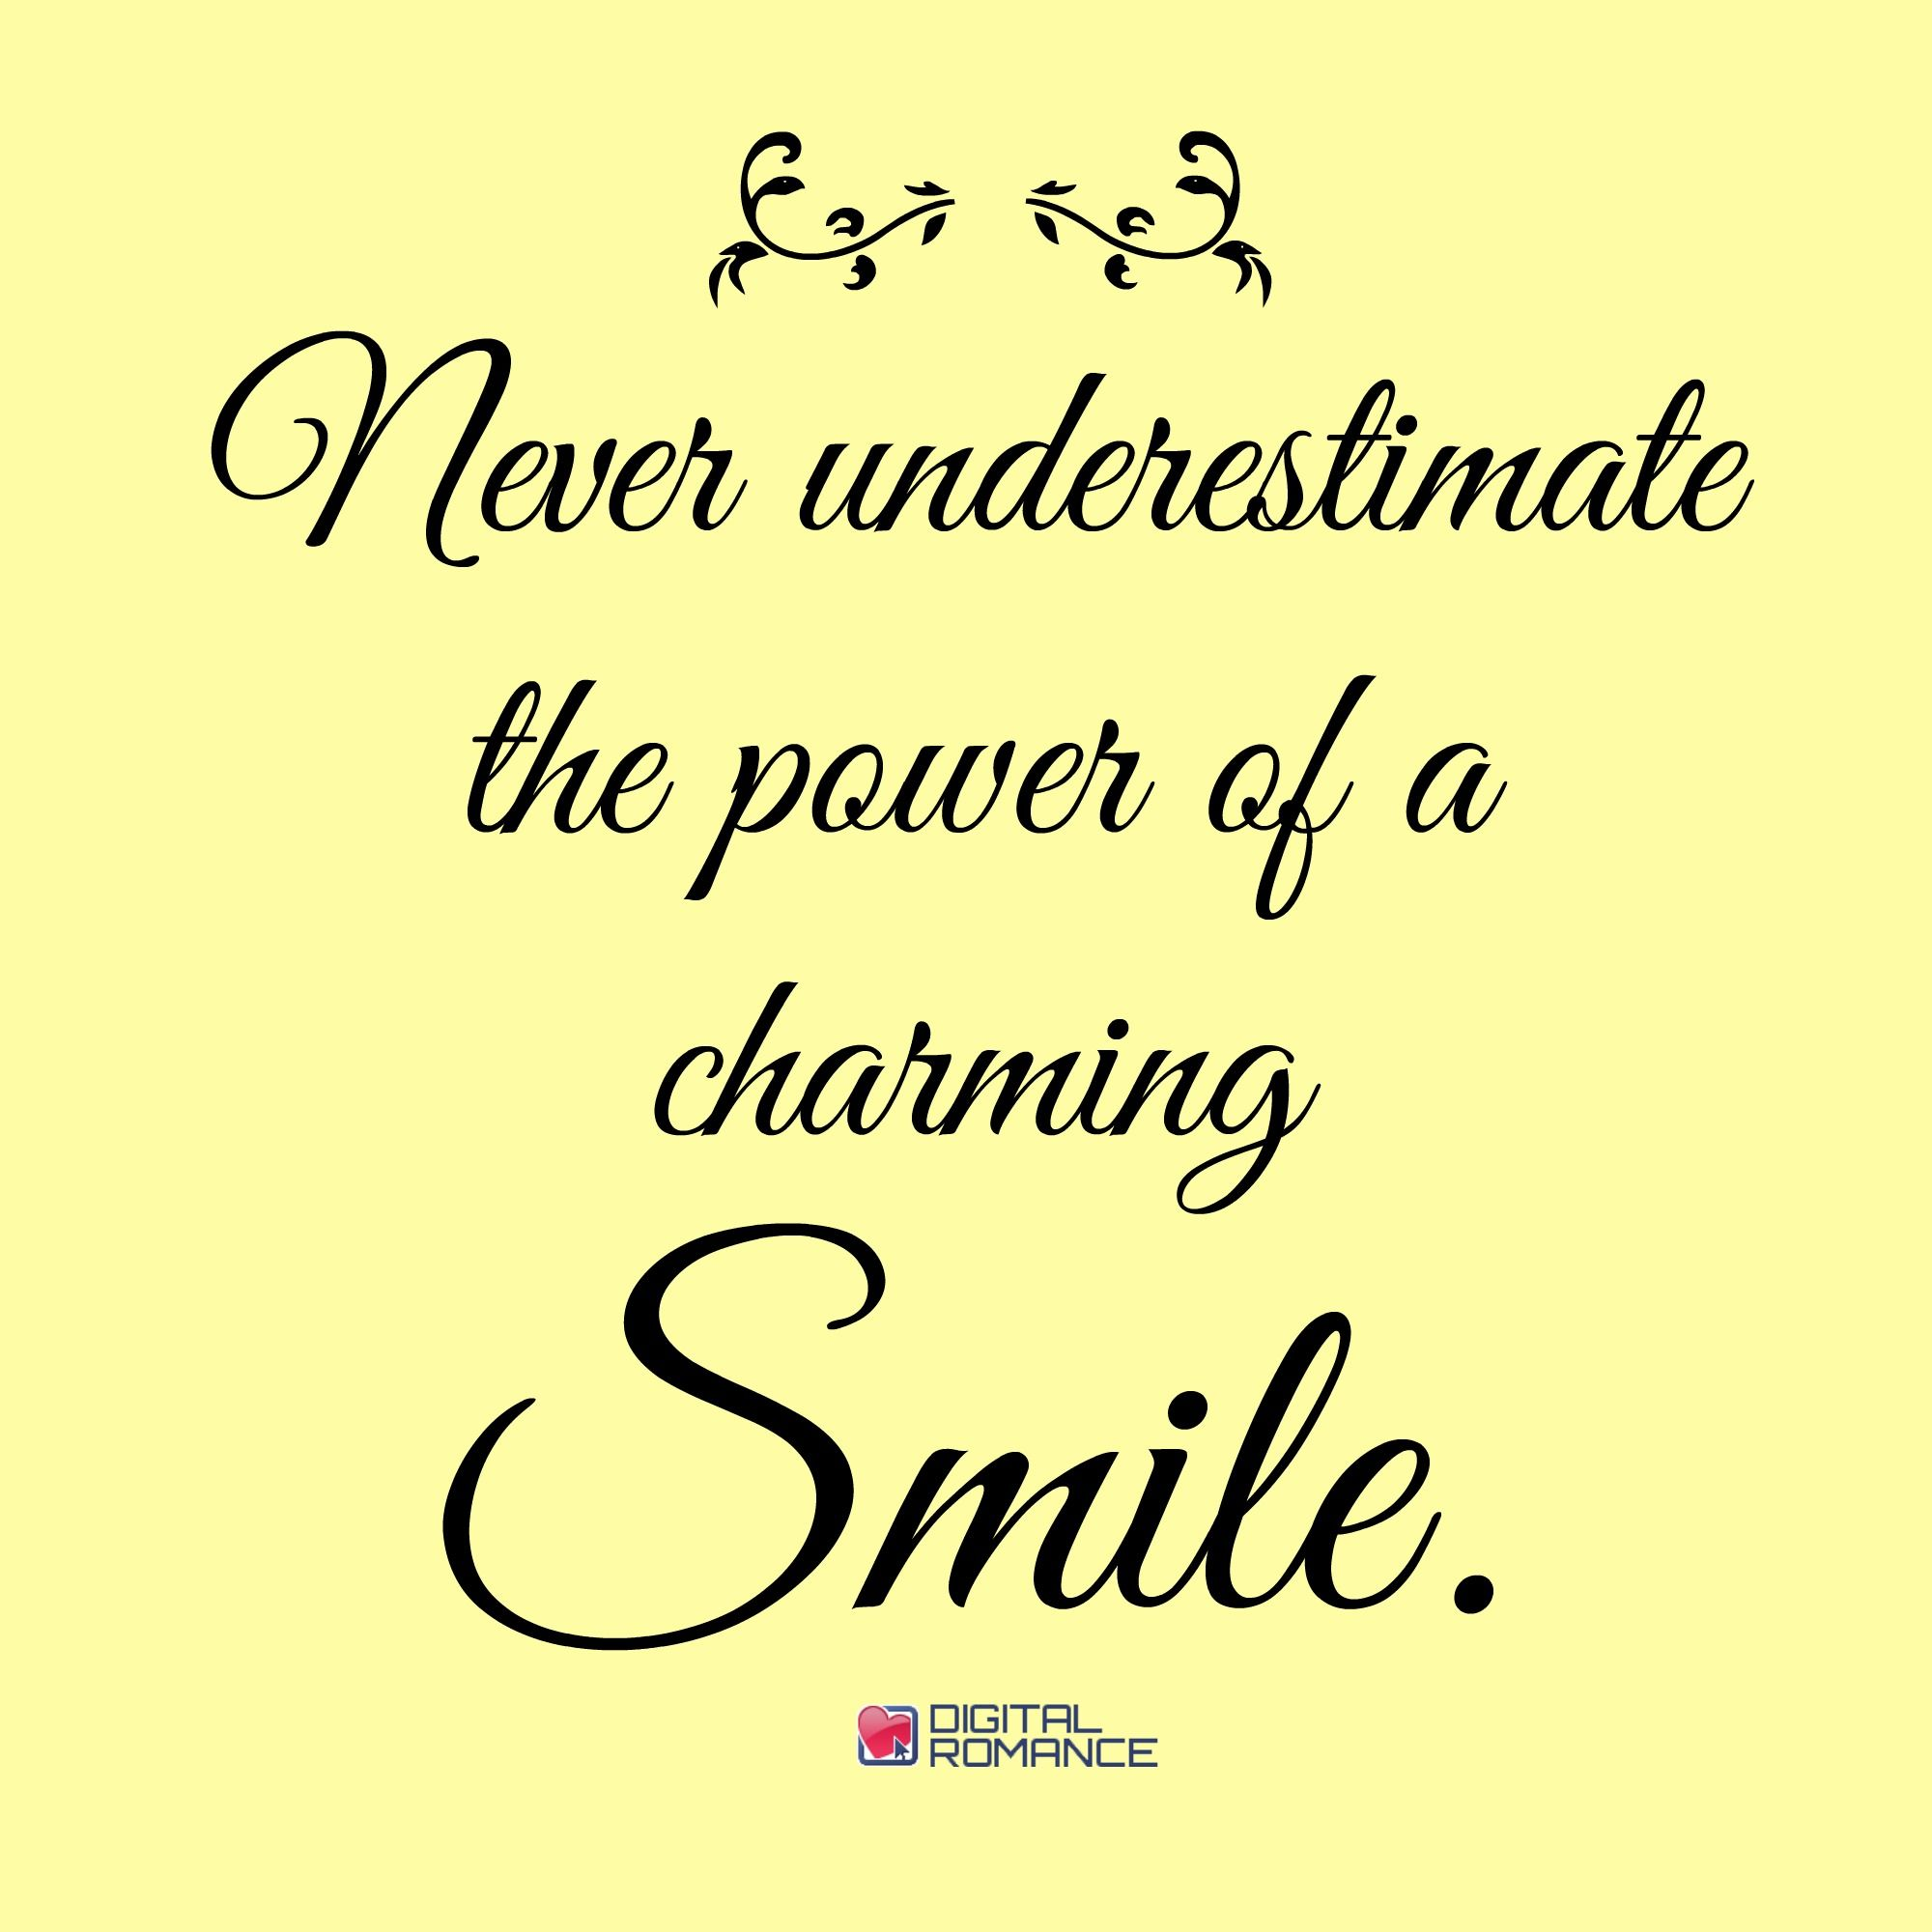 Smile Quotes And Sayings: Never Underestimate The Power Of A Charming Smile